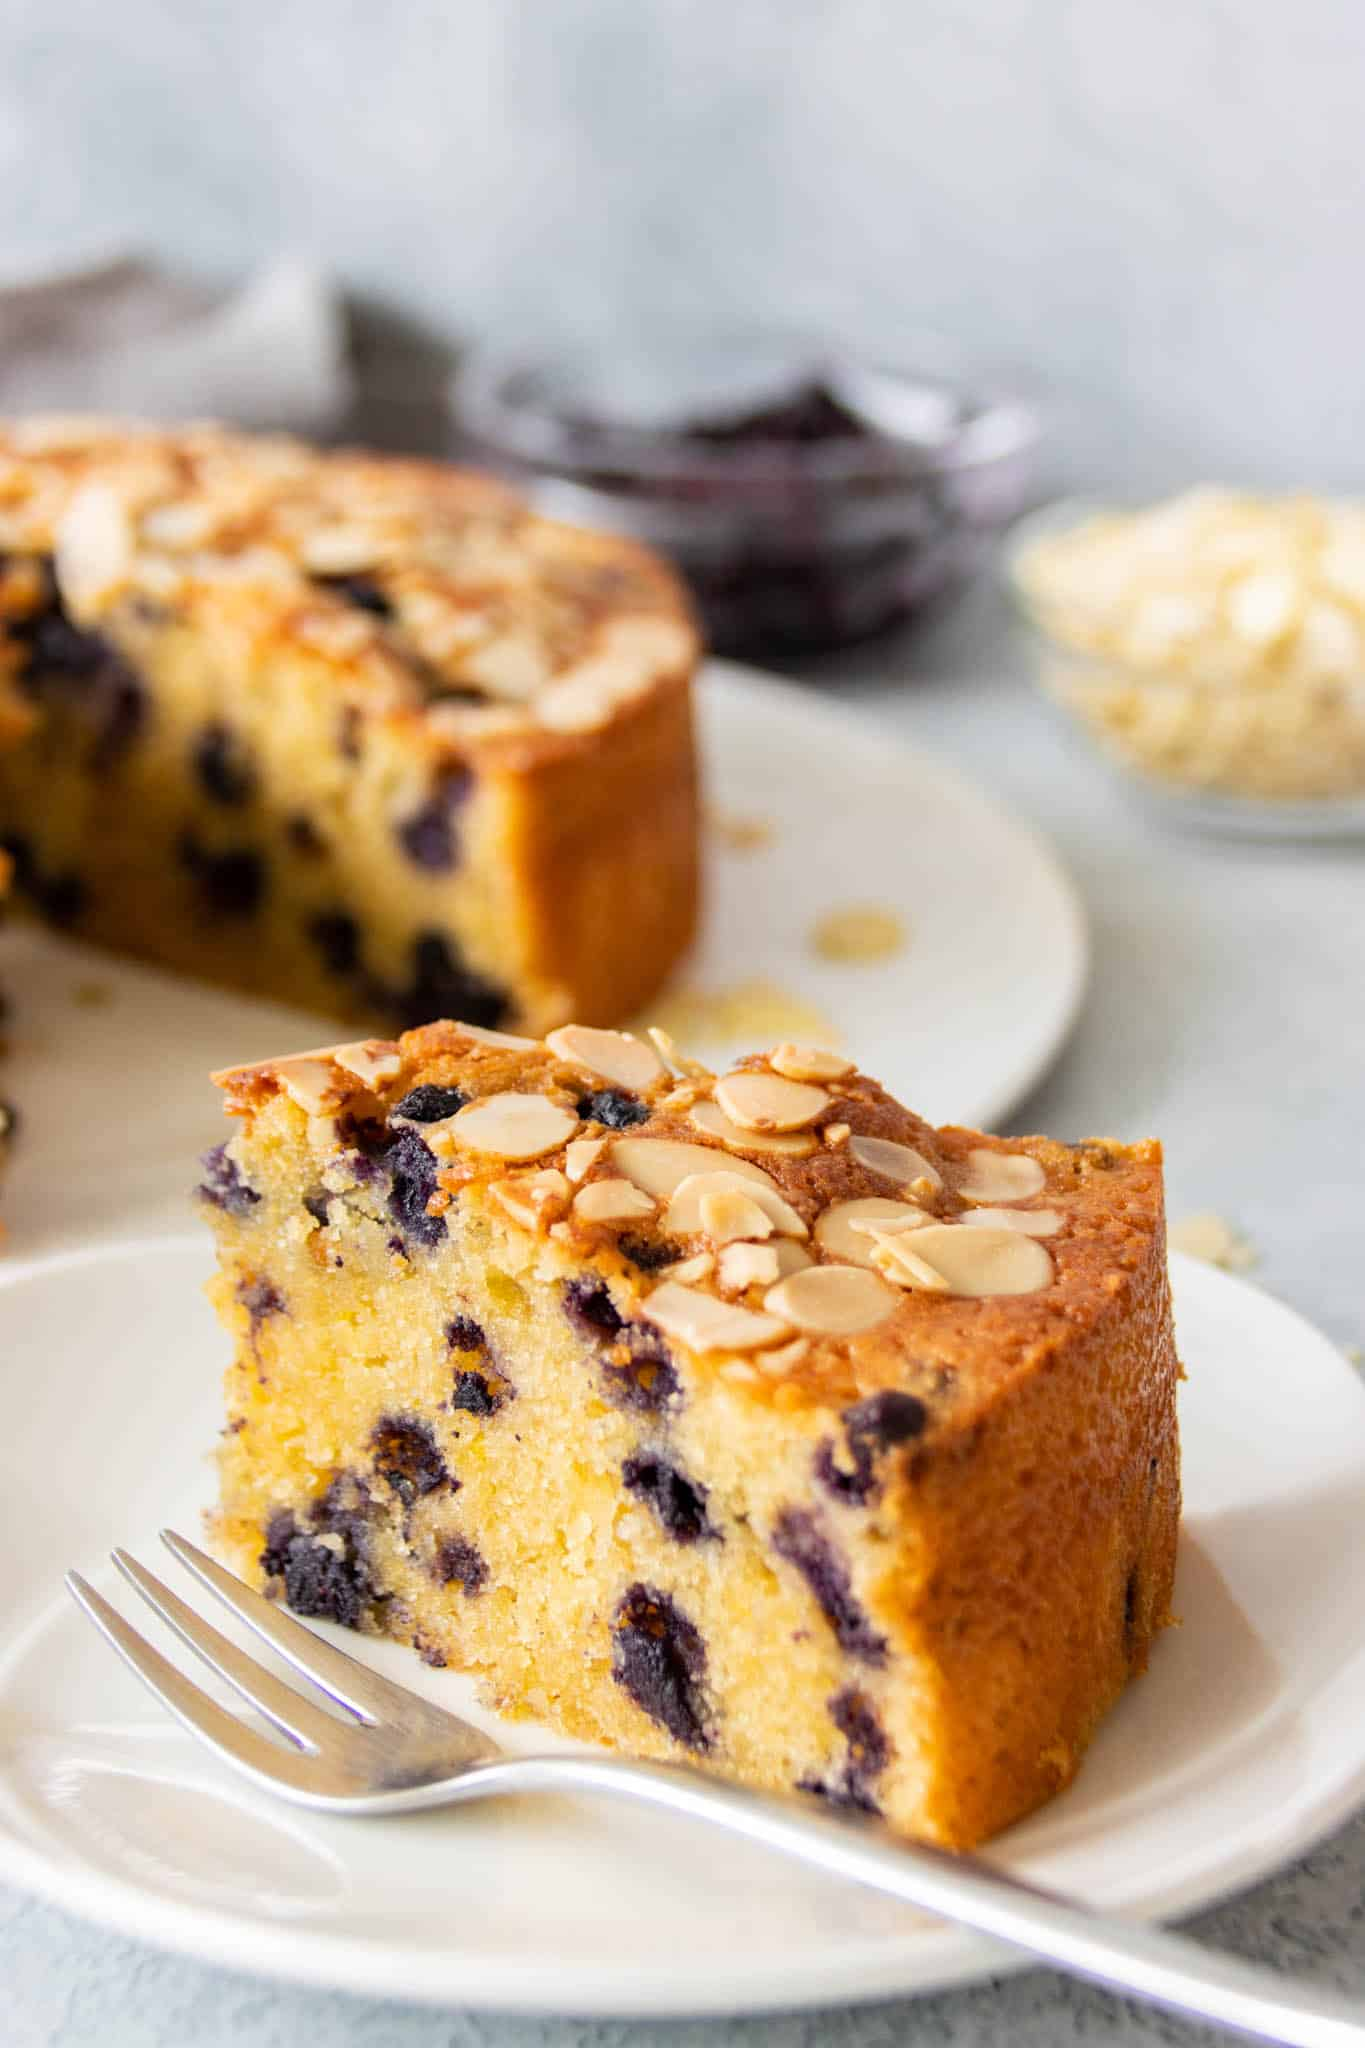 A slice of coconut, almond and blueberry cake, served on a plate